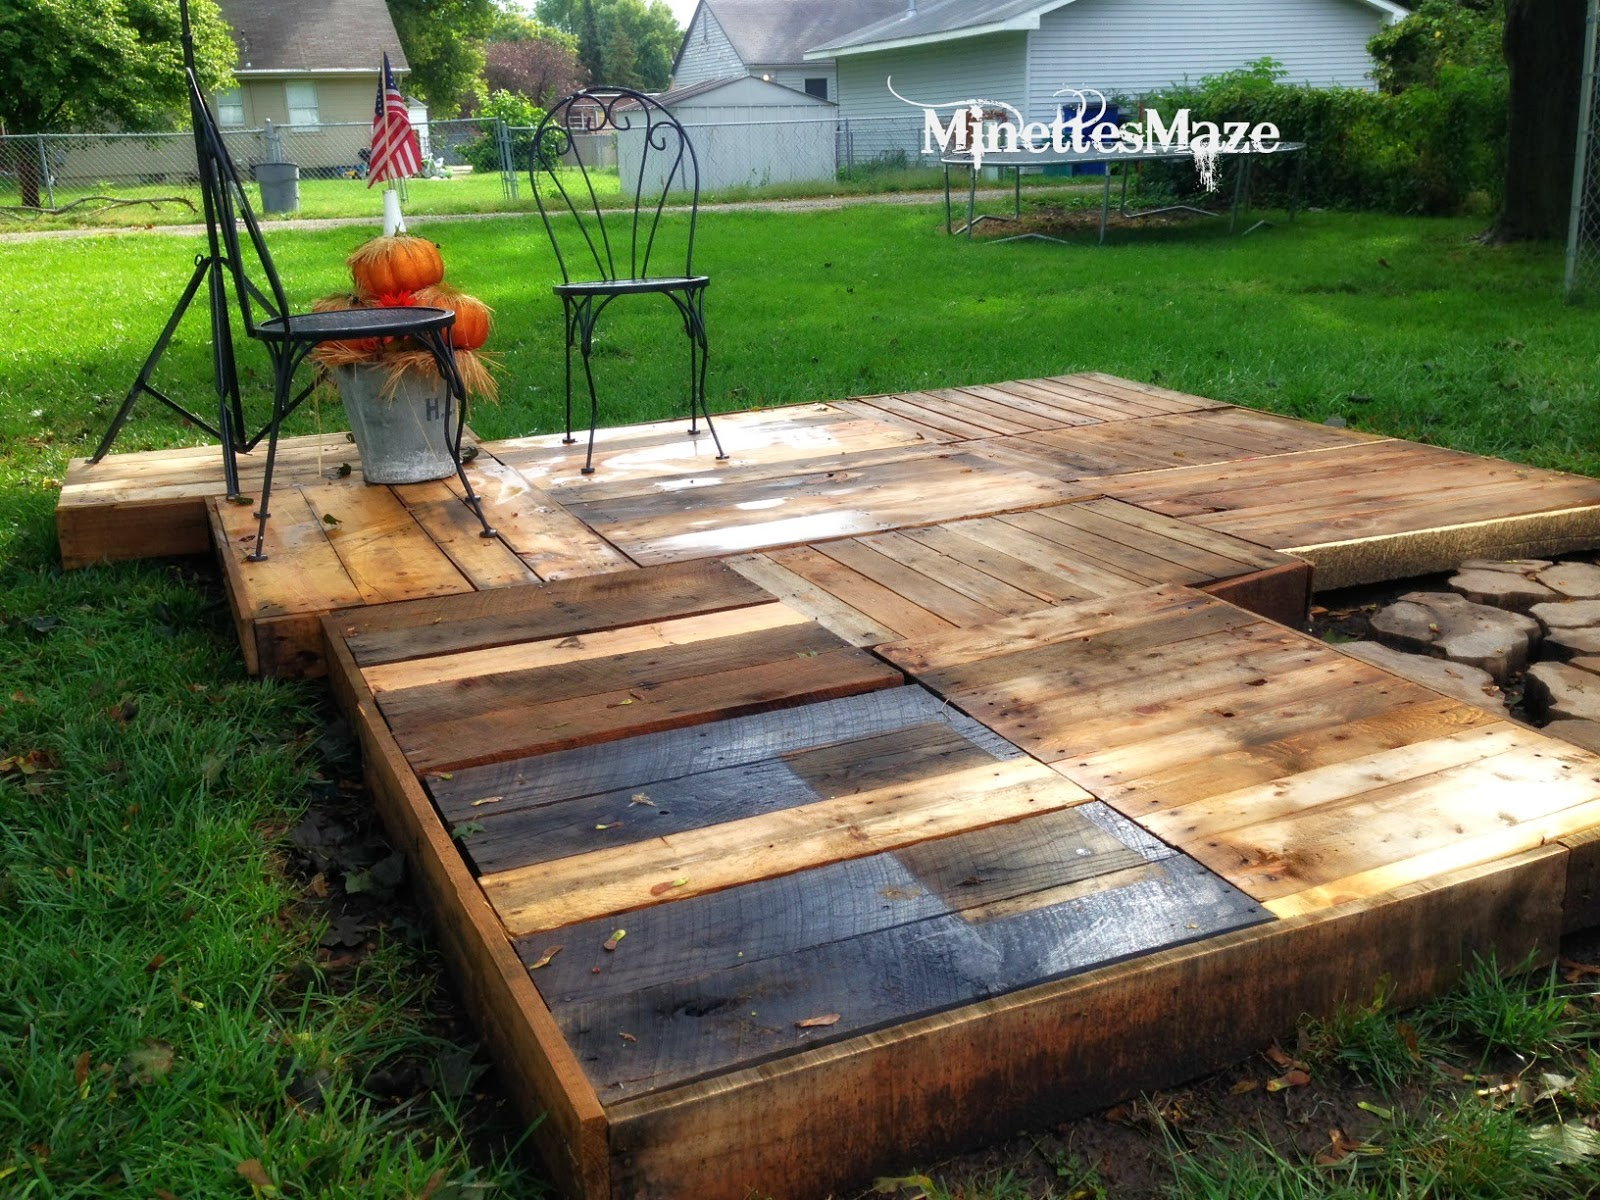 Minettesmaze diy pallet deck for How to build a cheap floating deck